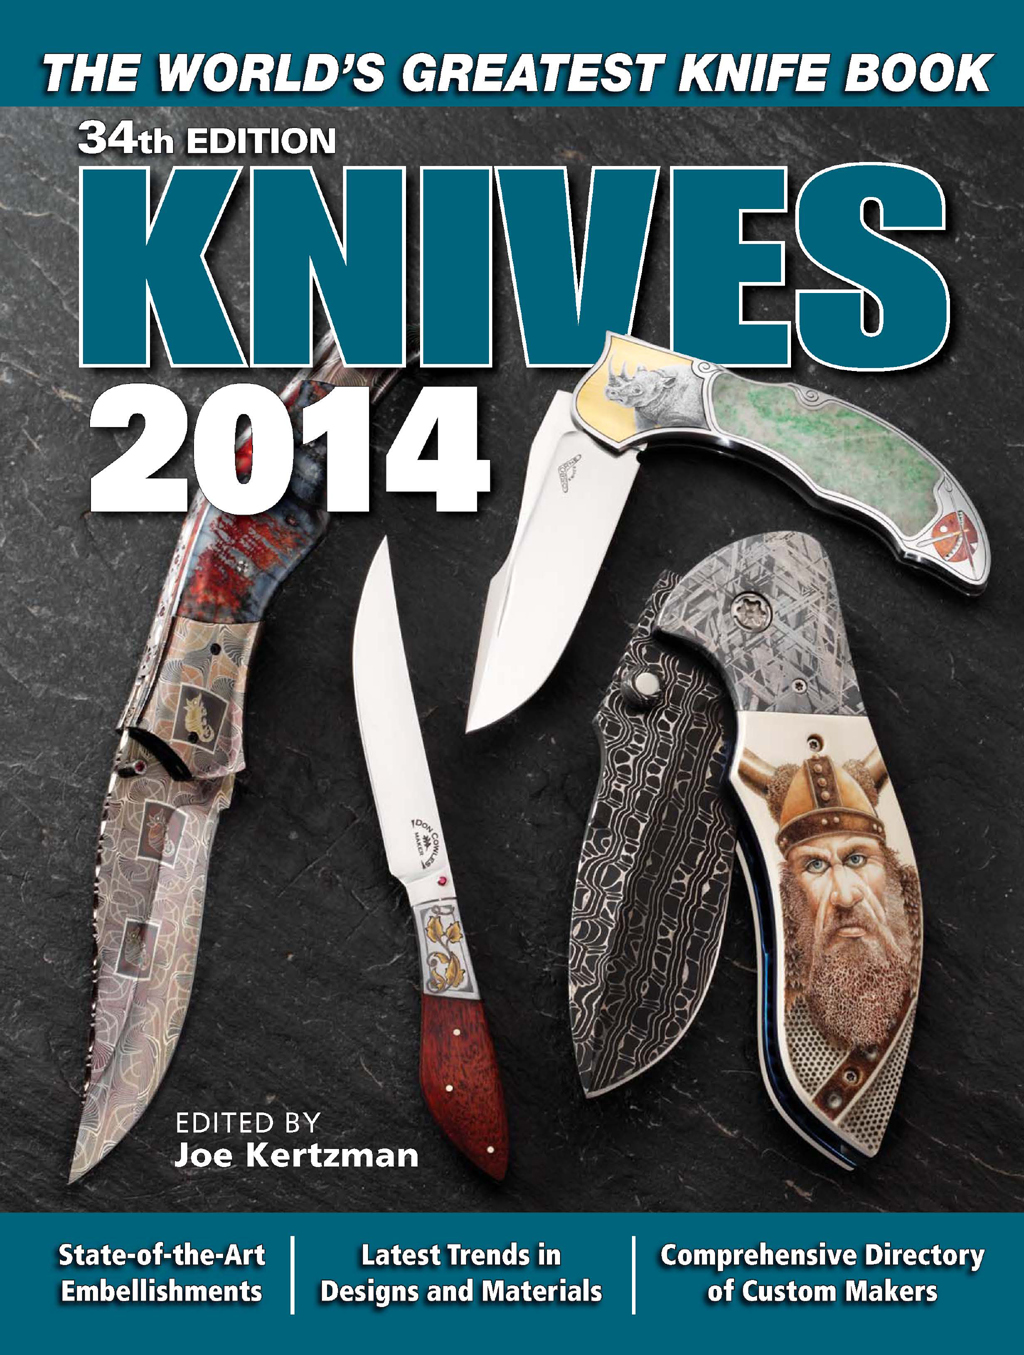 Knives 2014 The World's Greatest Knife Book